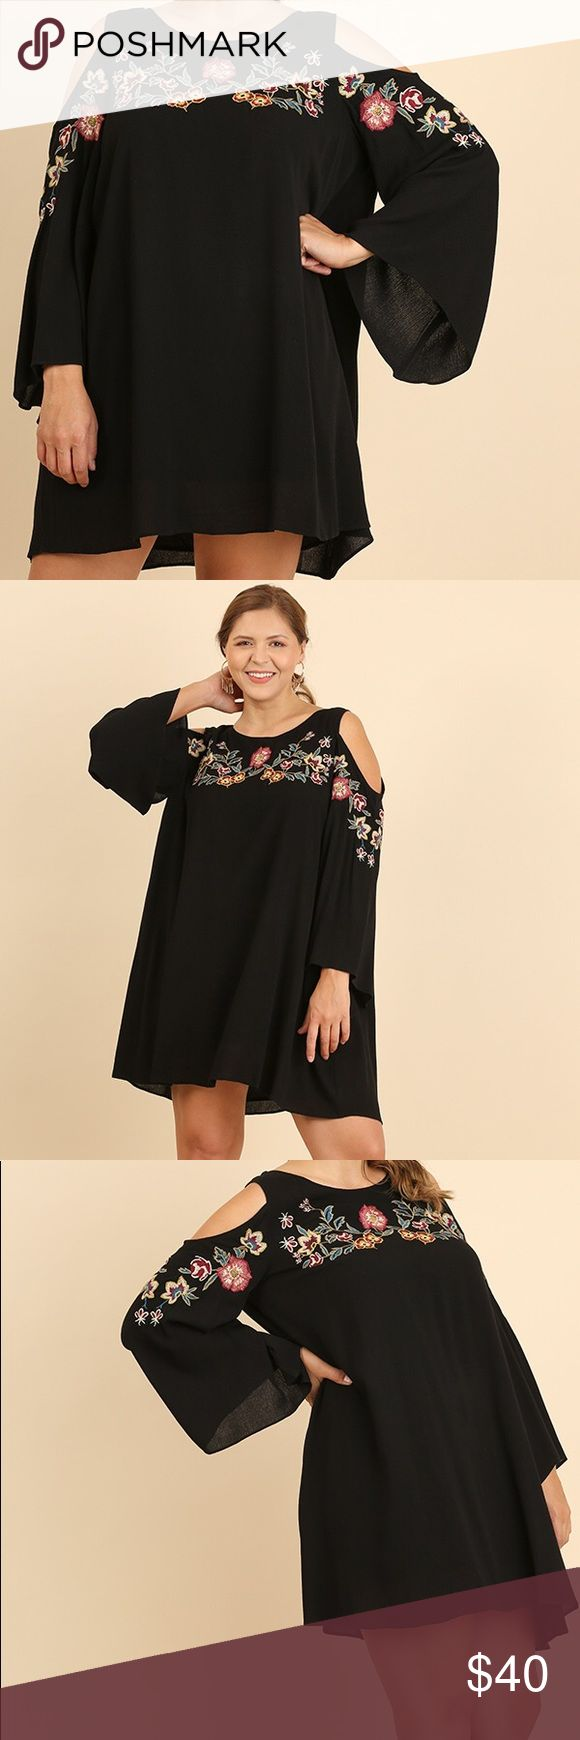 UMGEE Black Tunic Dress Embroidered Size XL New New. Beautiful floral embroidery. Cold/open shoulders. Lined. One keyhole button on back. Smoke free home. I ship quickly. Happy Shopping! Umgee Dresses